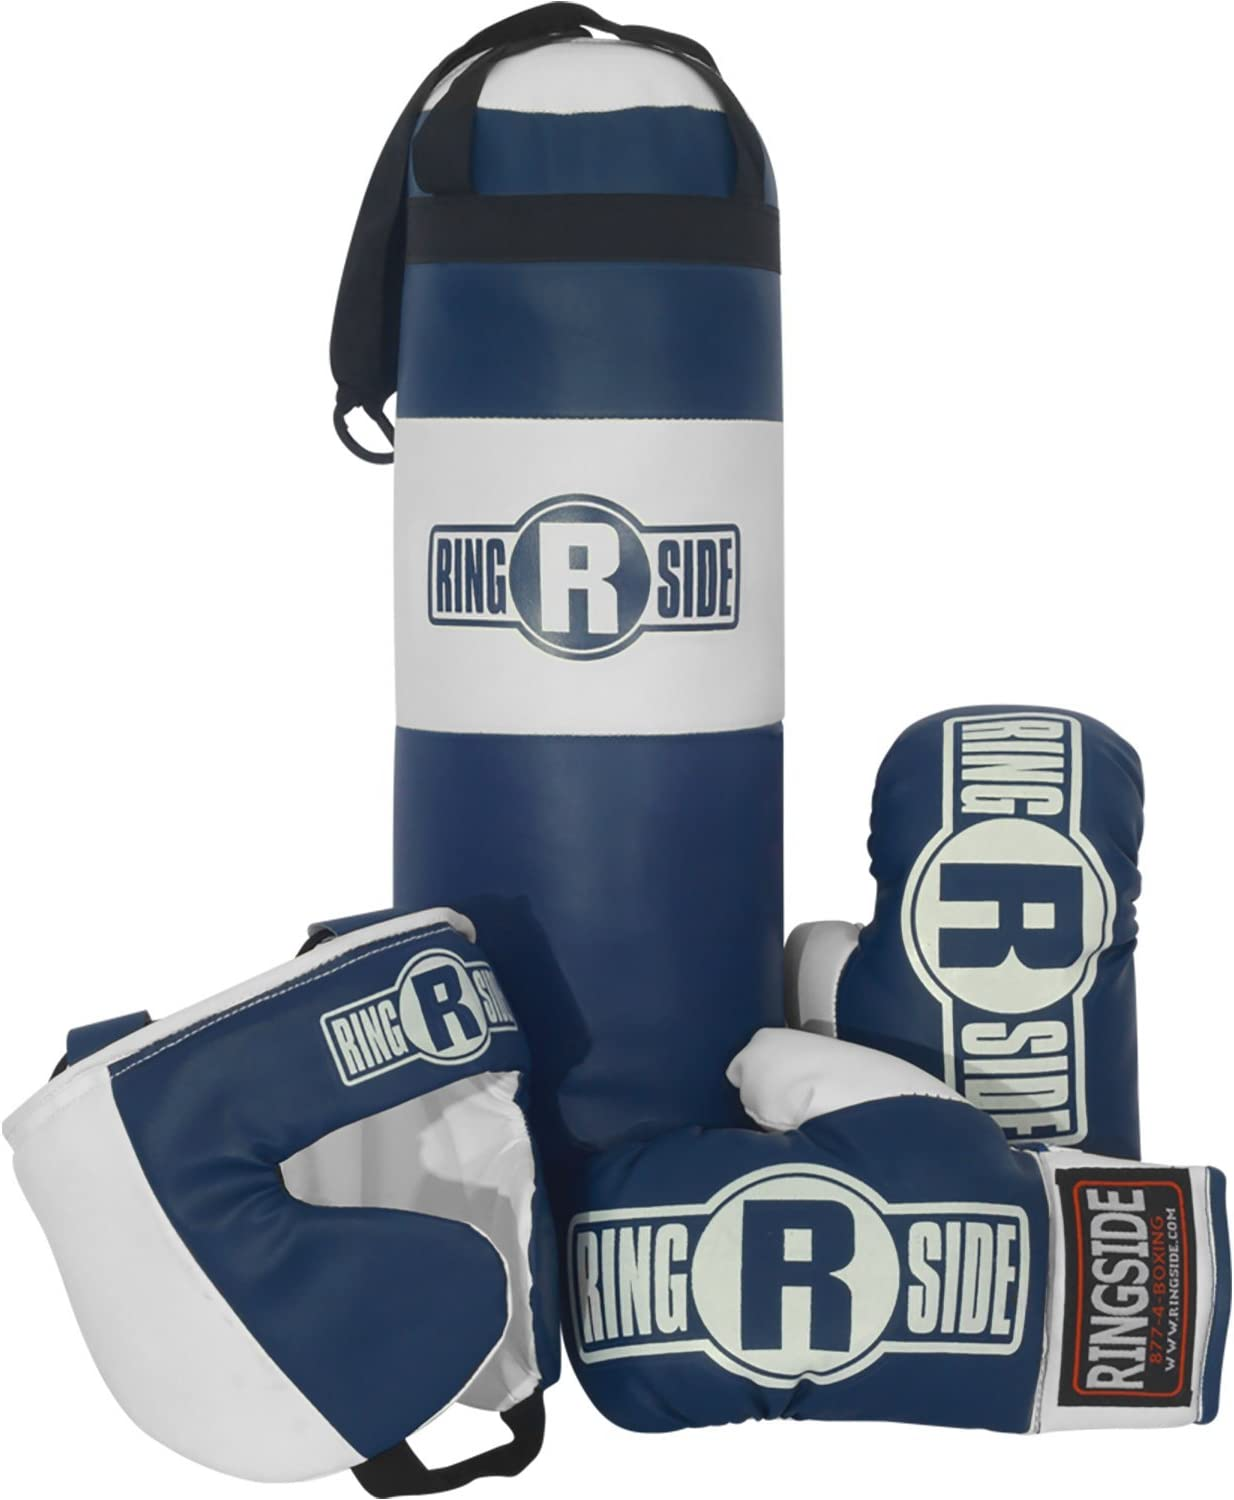 Ringside Kids Boxing Gift Set (2-5 Year Old), Blue : Sports & Outdoors